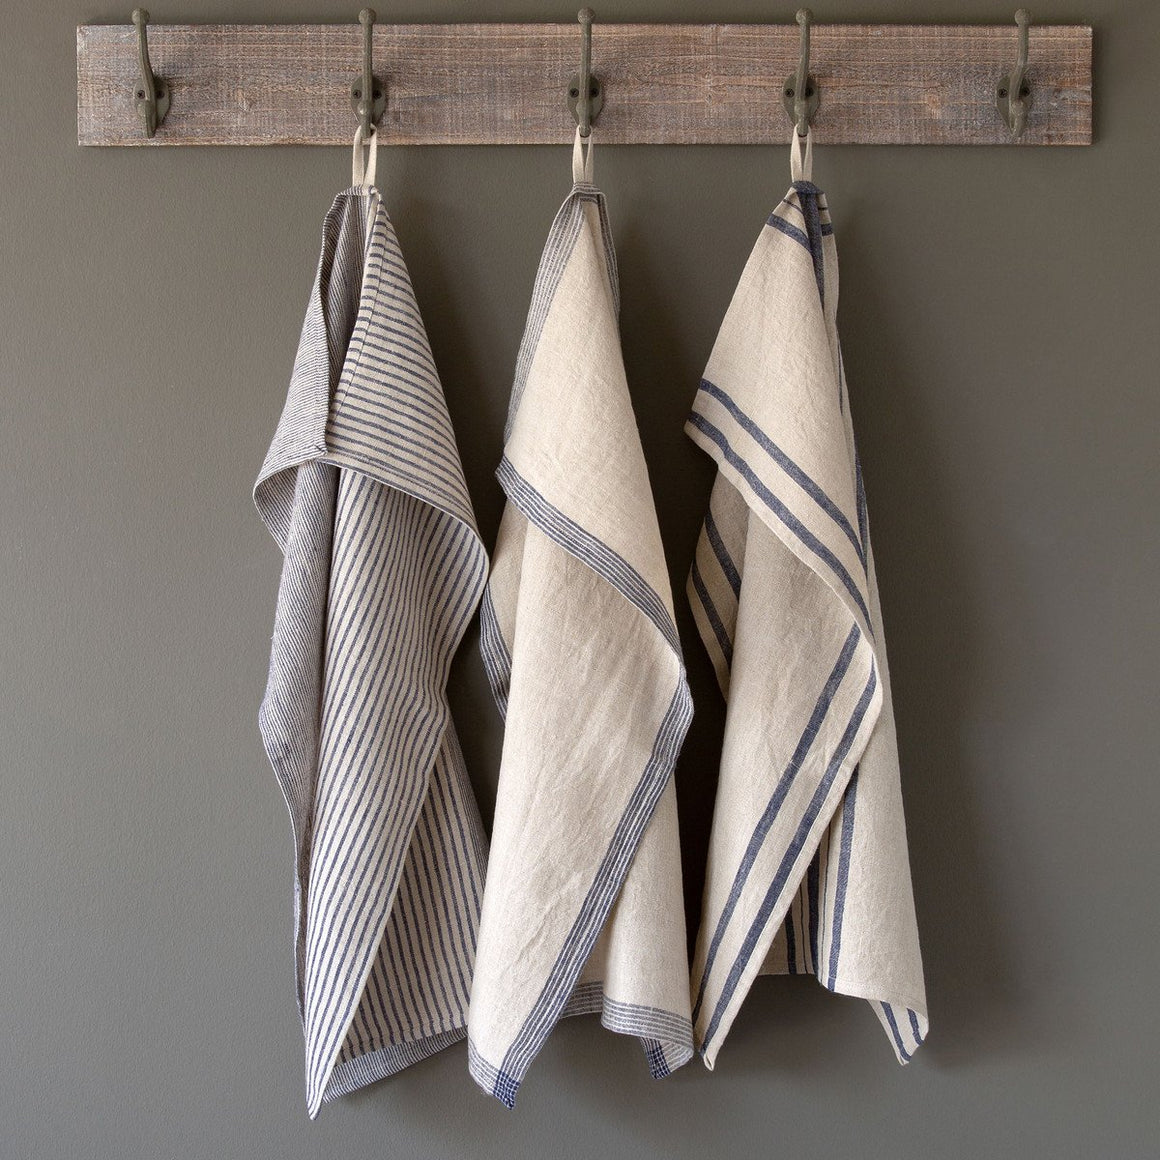 Soft Linen Dish Towel - Blues